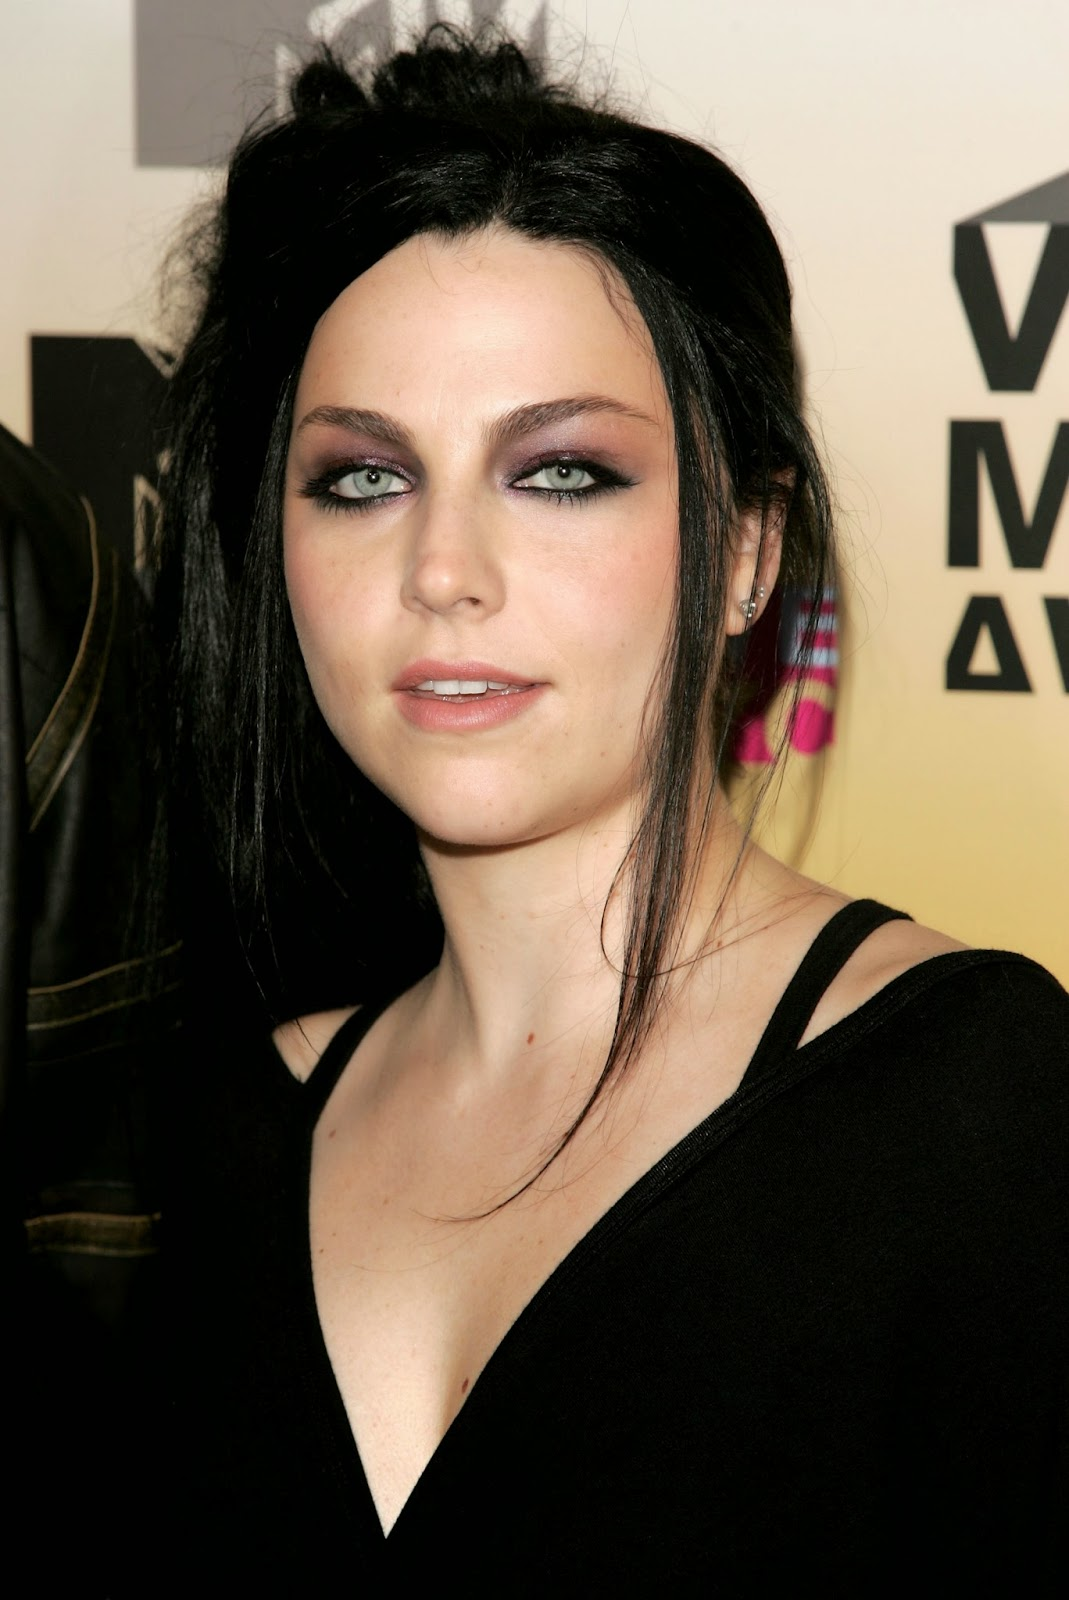 Not Amy lee gallery this excellent